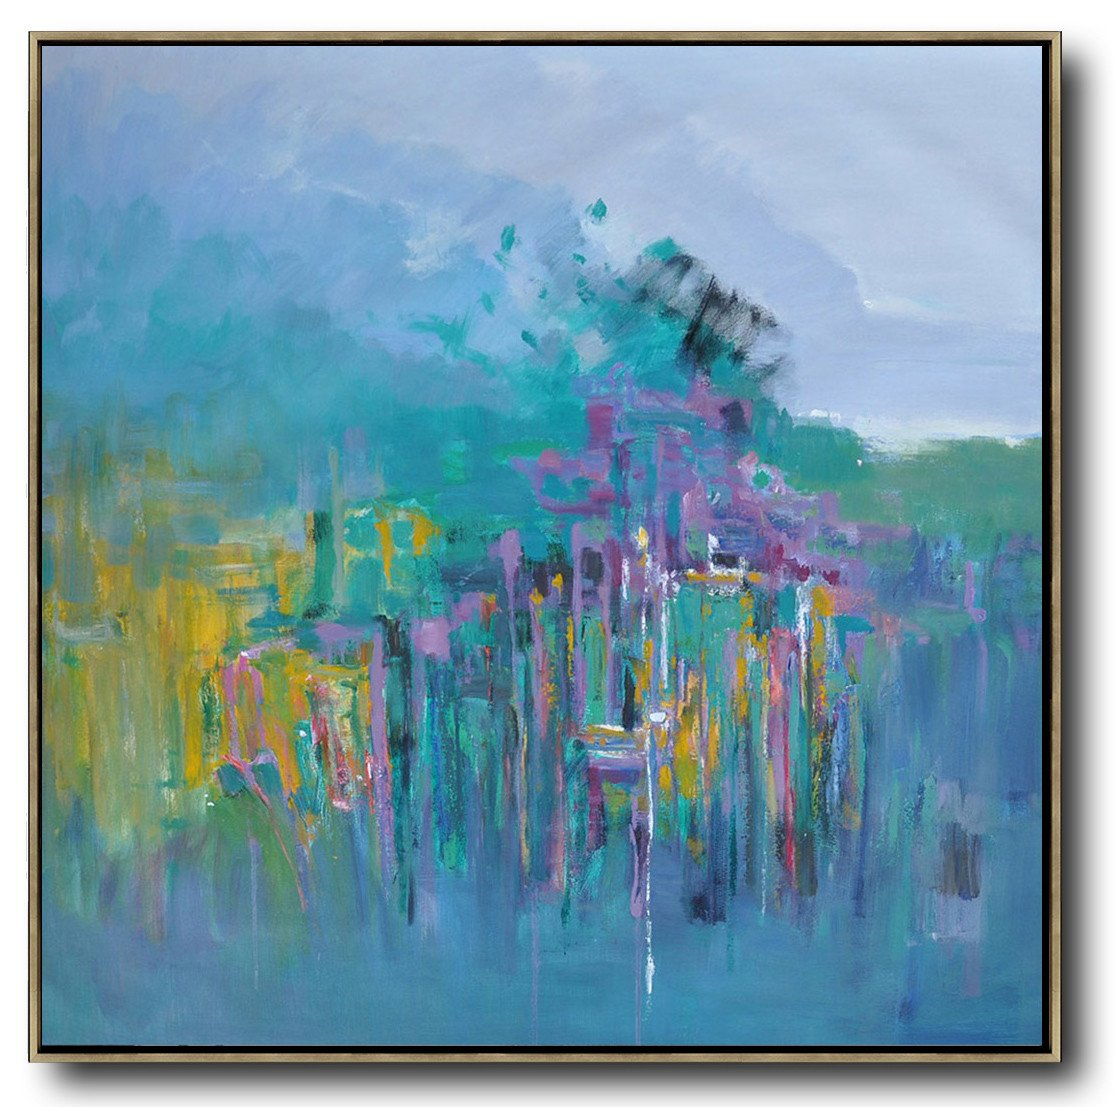 Hand Painted Extra Large Abstract Painting,Abstract Landscape Oil Painting,Artwork For Sale,Purple Grey,Lake Blue,Purple,Yellow.etc